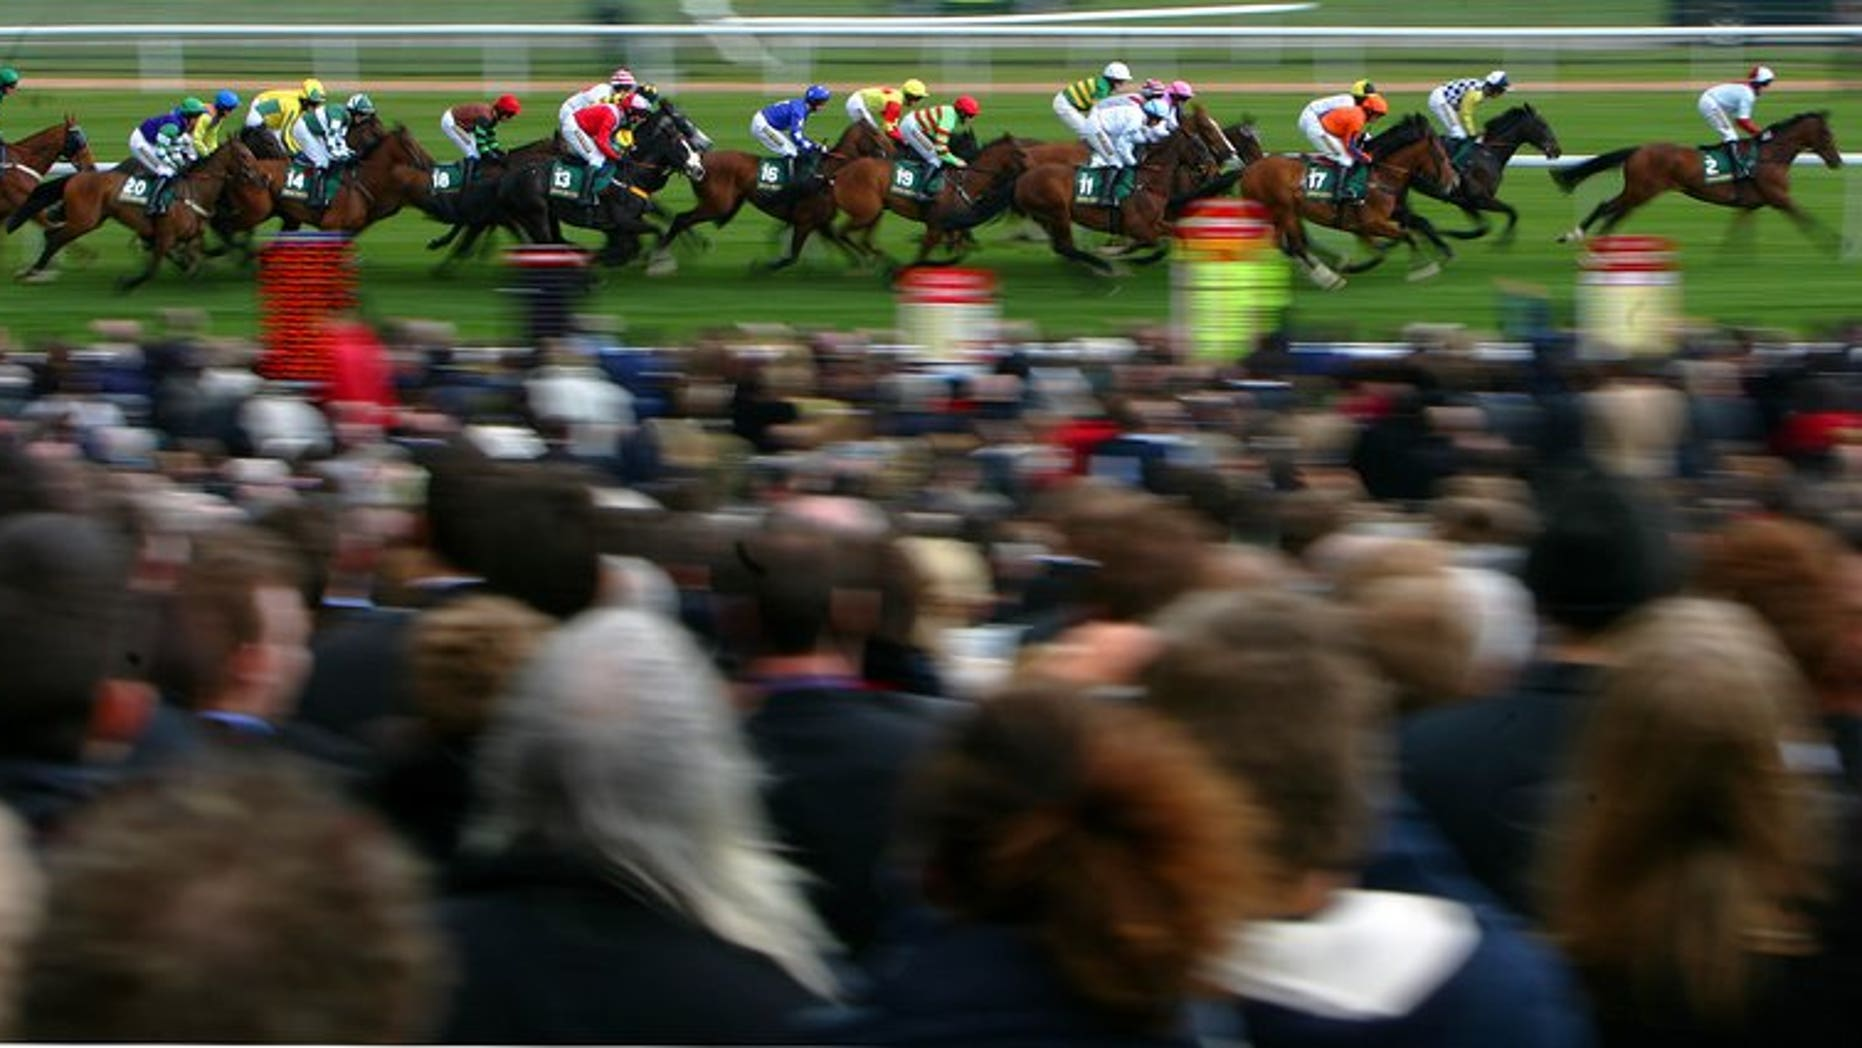 This file photo shows jockeys competing in the Handicap Hurdle race at Aintree racecourse in Liverpool, on April 5, 2008. Jockey Brian Toomey was being treated in hospital on Friday after sustaining life-threatening head injuries during a fall at Perth racecourse in Scotland.